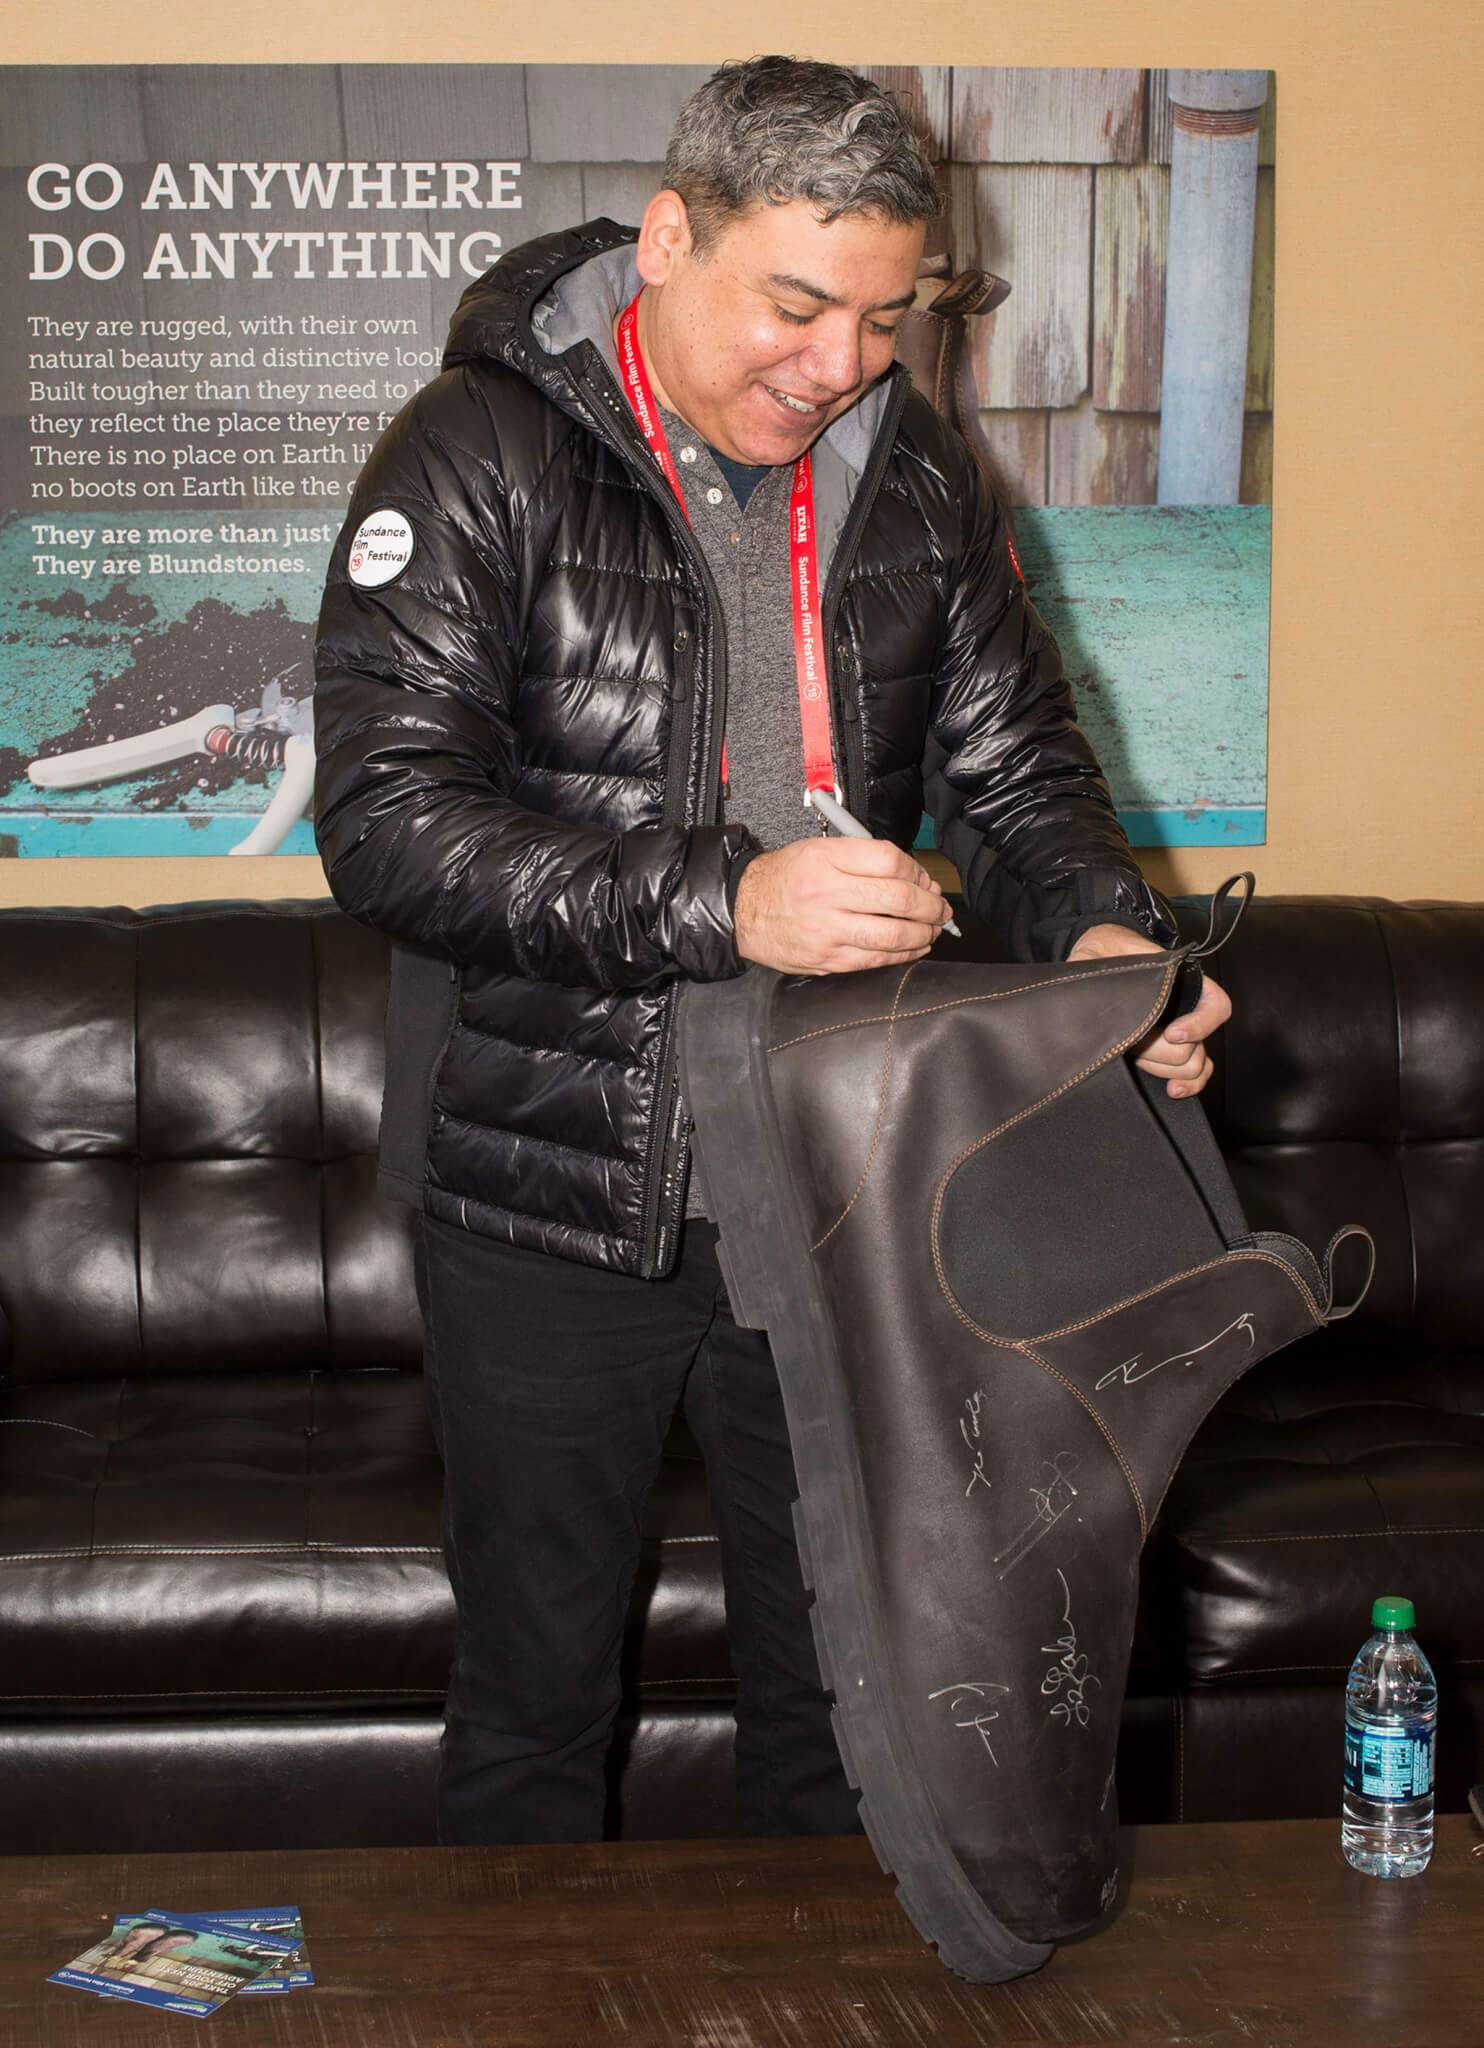 Eugene Hernandez, Deputy Director at Film Society of Lincoln Center, signs a giant Blundstone boot at Sundance 2015.